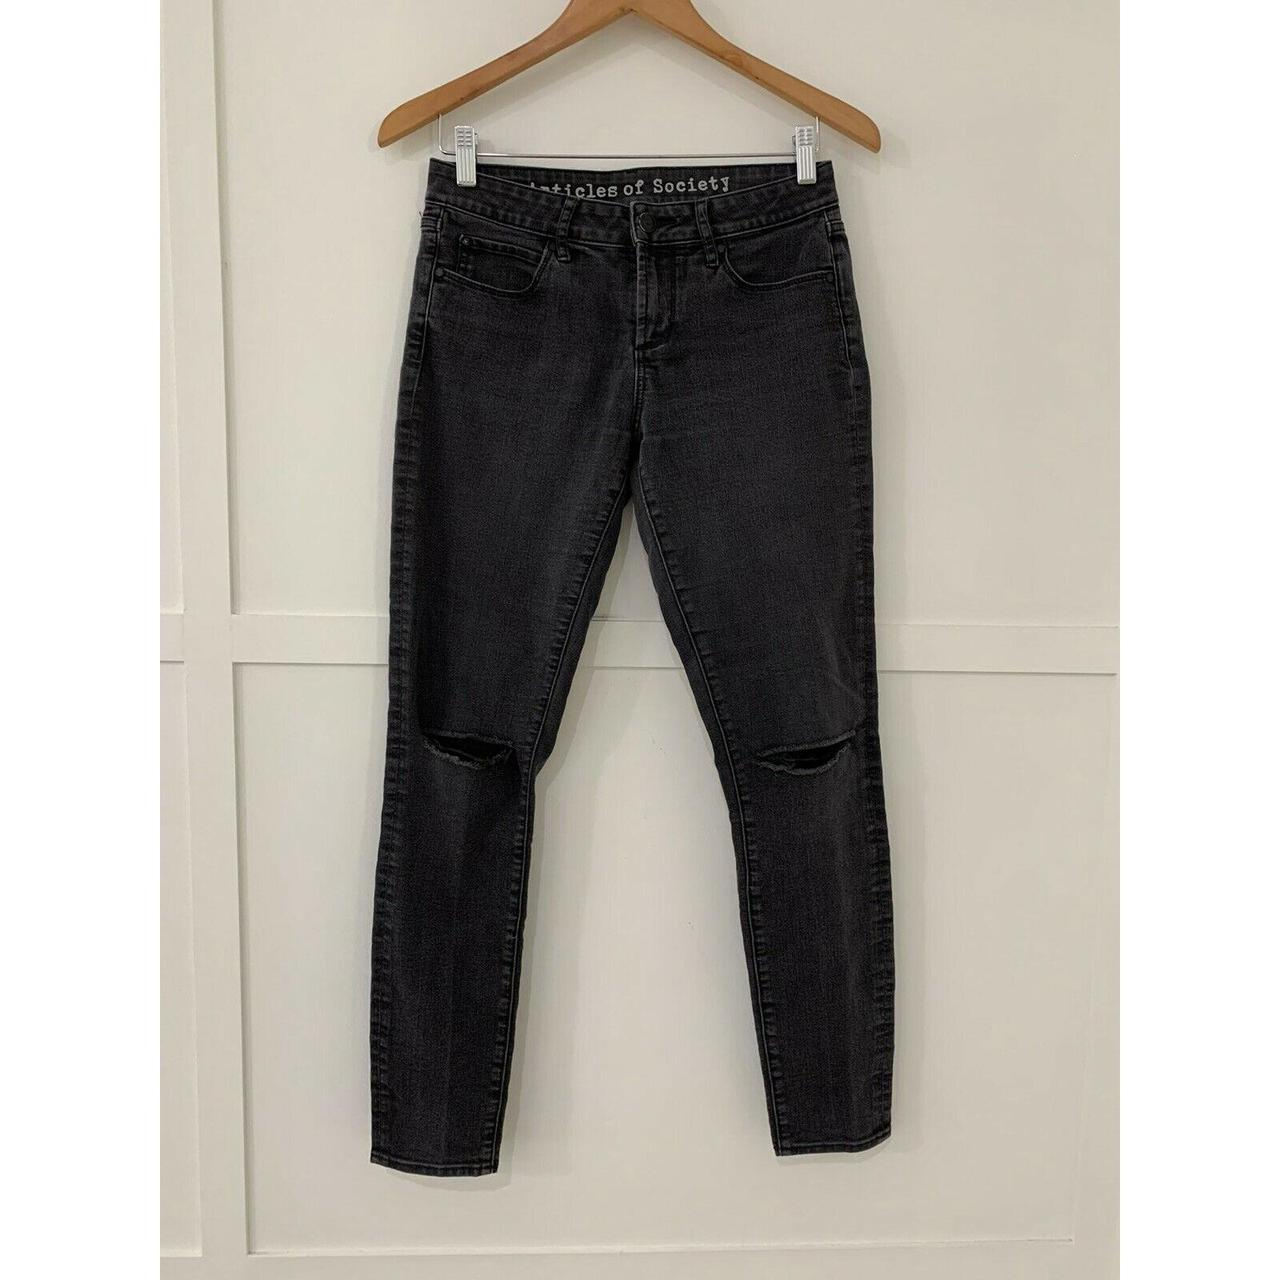 Product Image 1 - Articles of Society Black Jeans